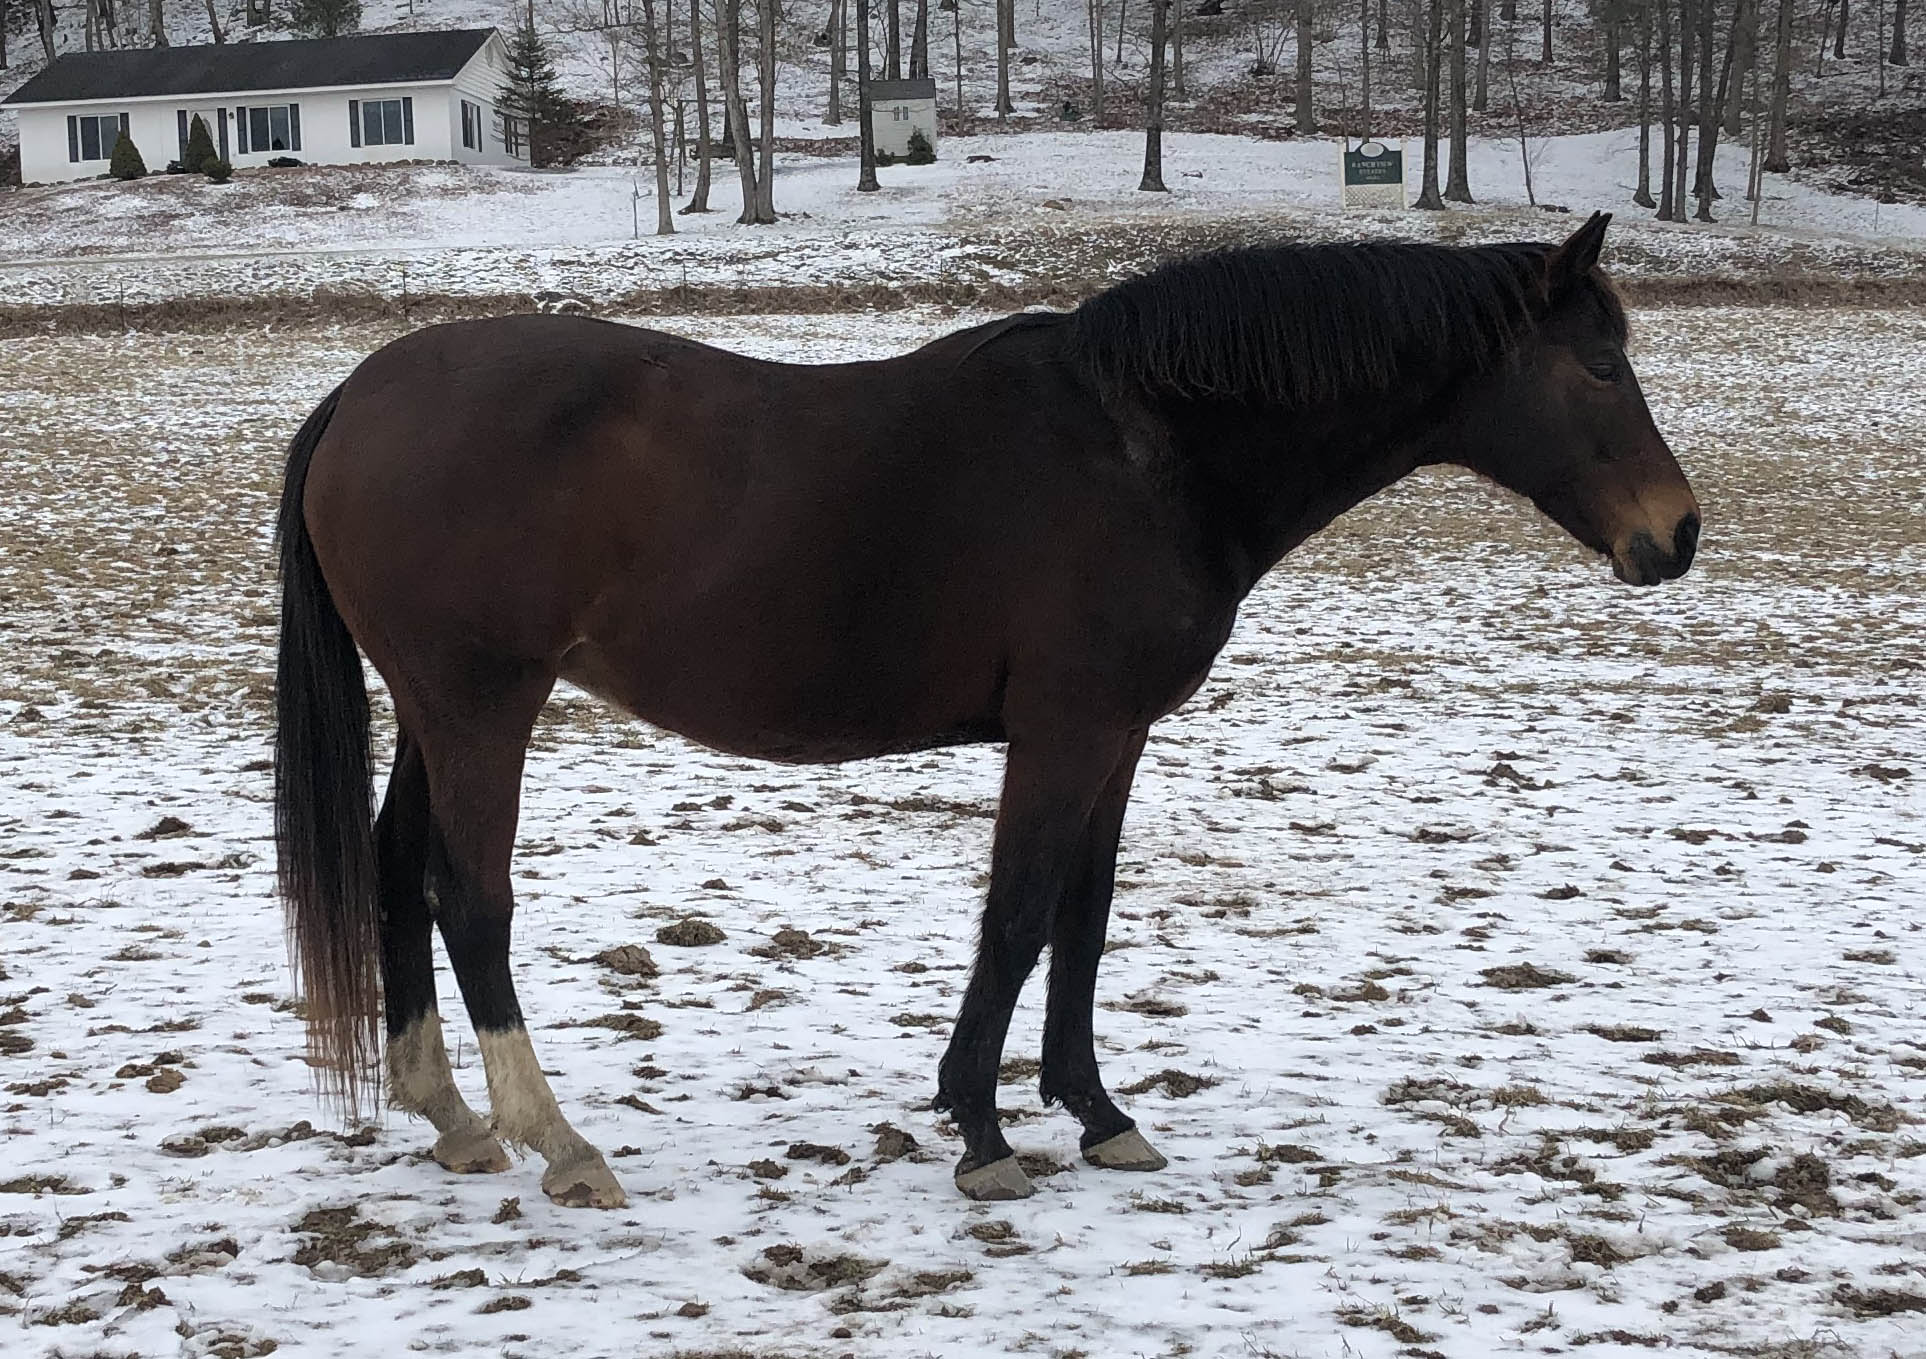 Opal - 16.1 hand 2002 Oldenburg GOV mare. She is sired by Opus* and out of Miss Nickel Annie.